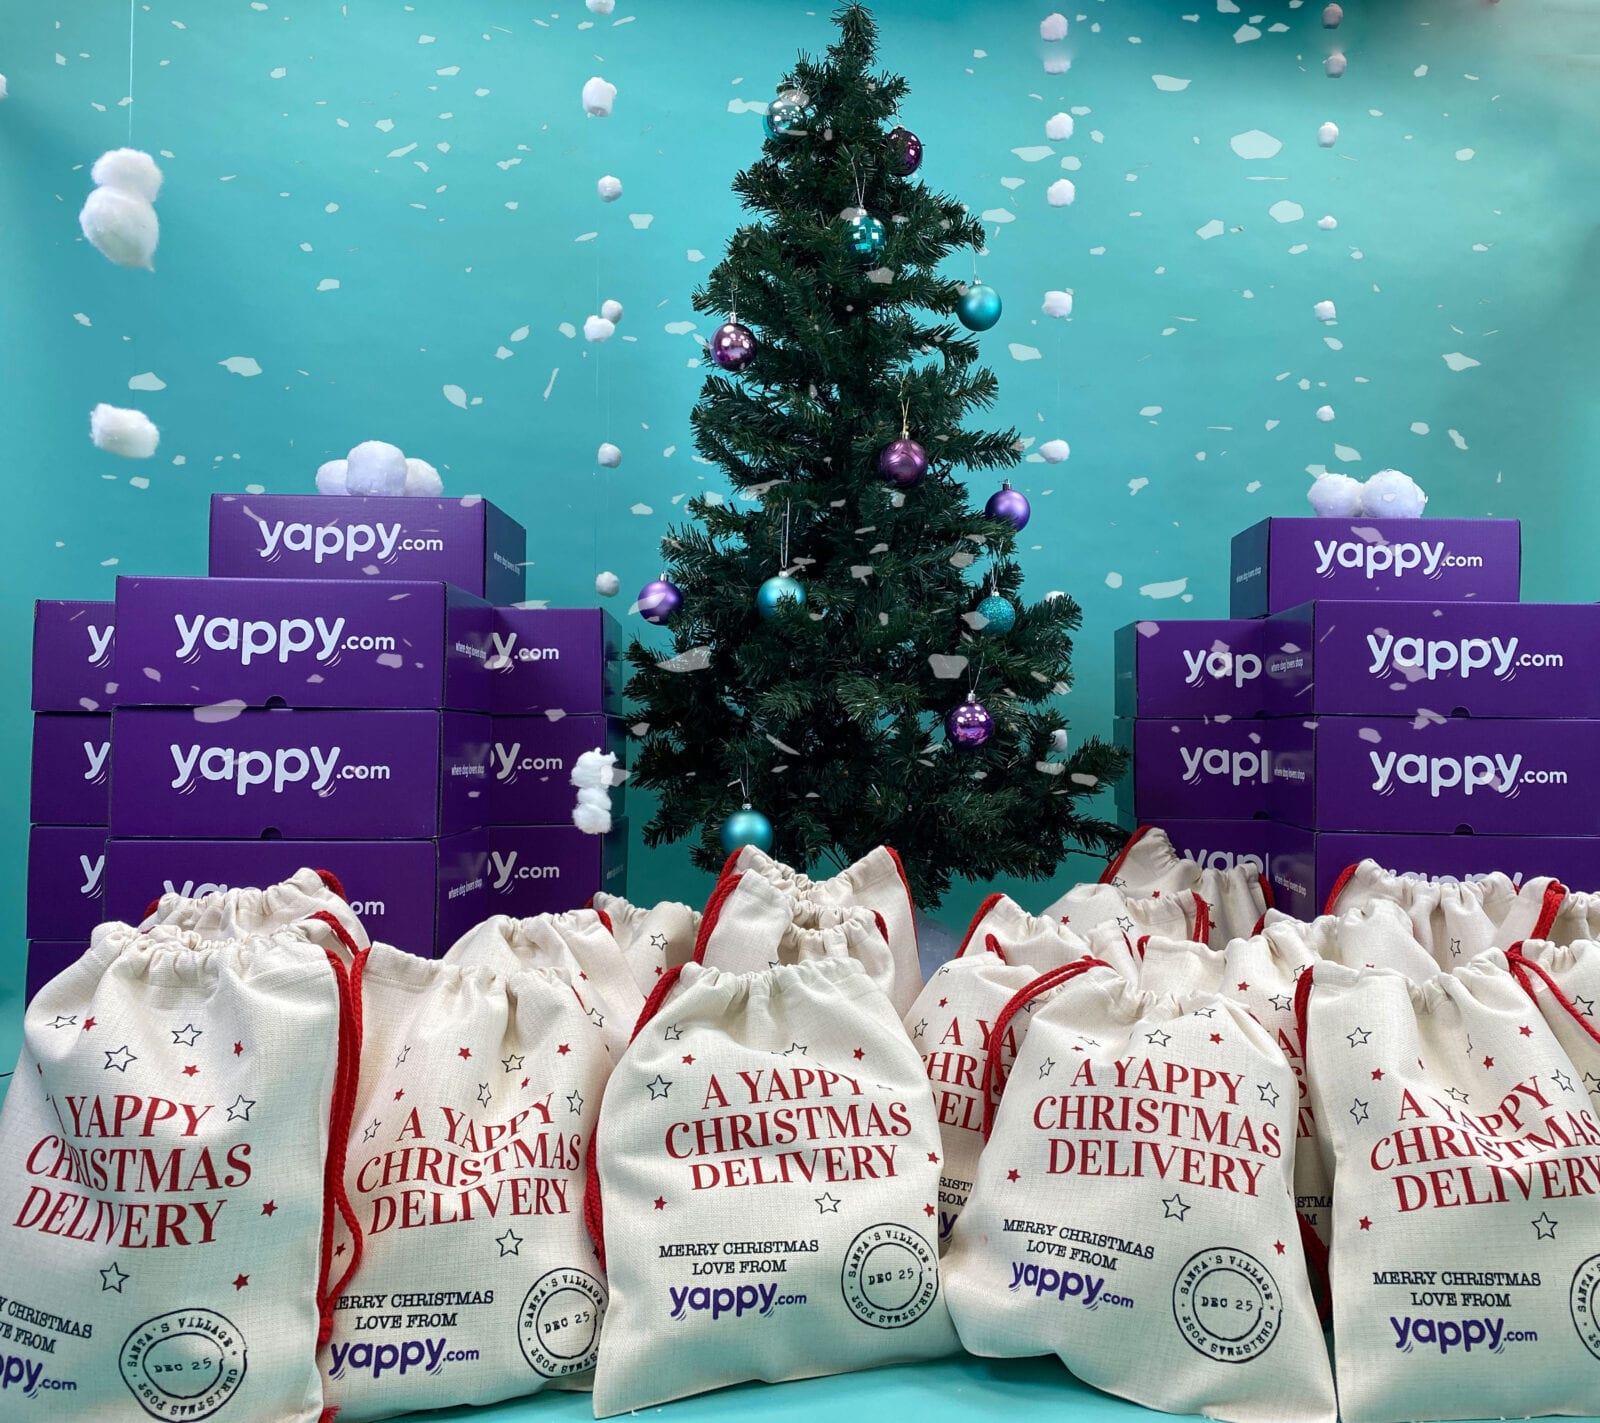 This pet gifting business is on a mission to give Manchester's rescue dogs a 'yappy Christmas', The Manc